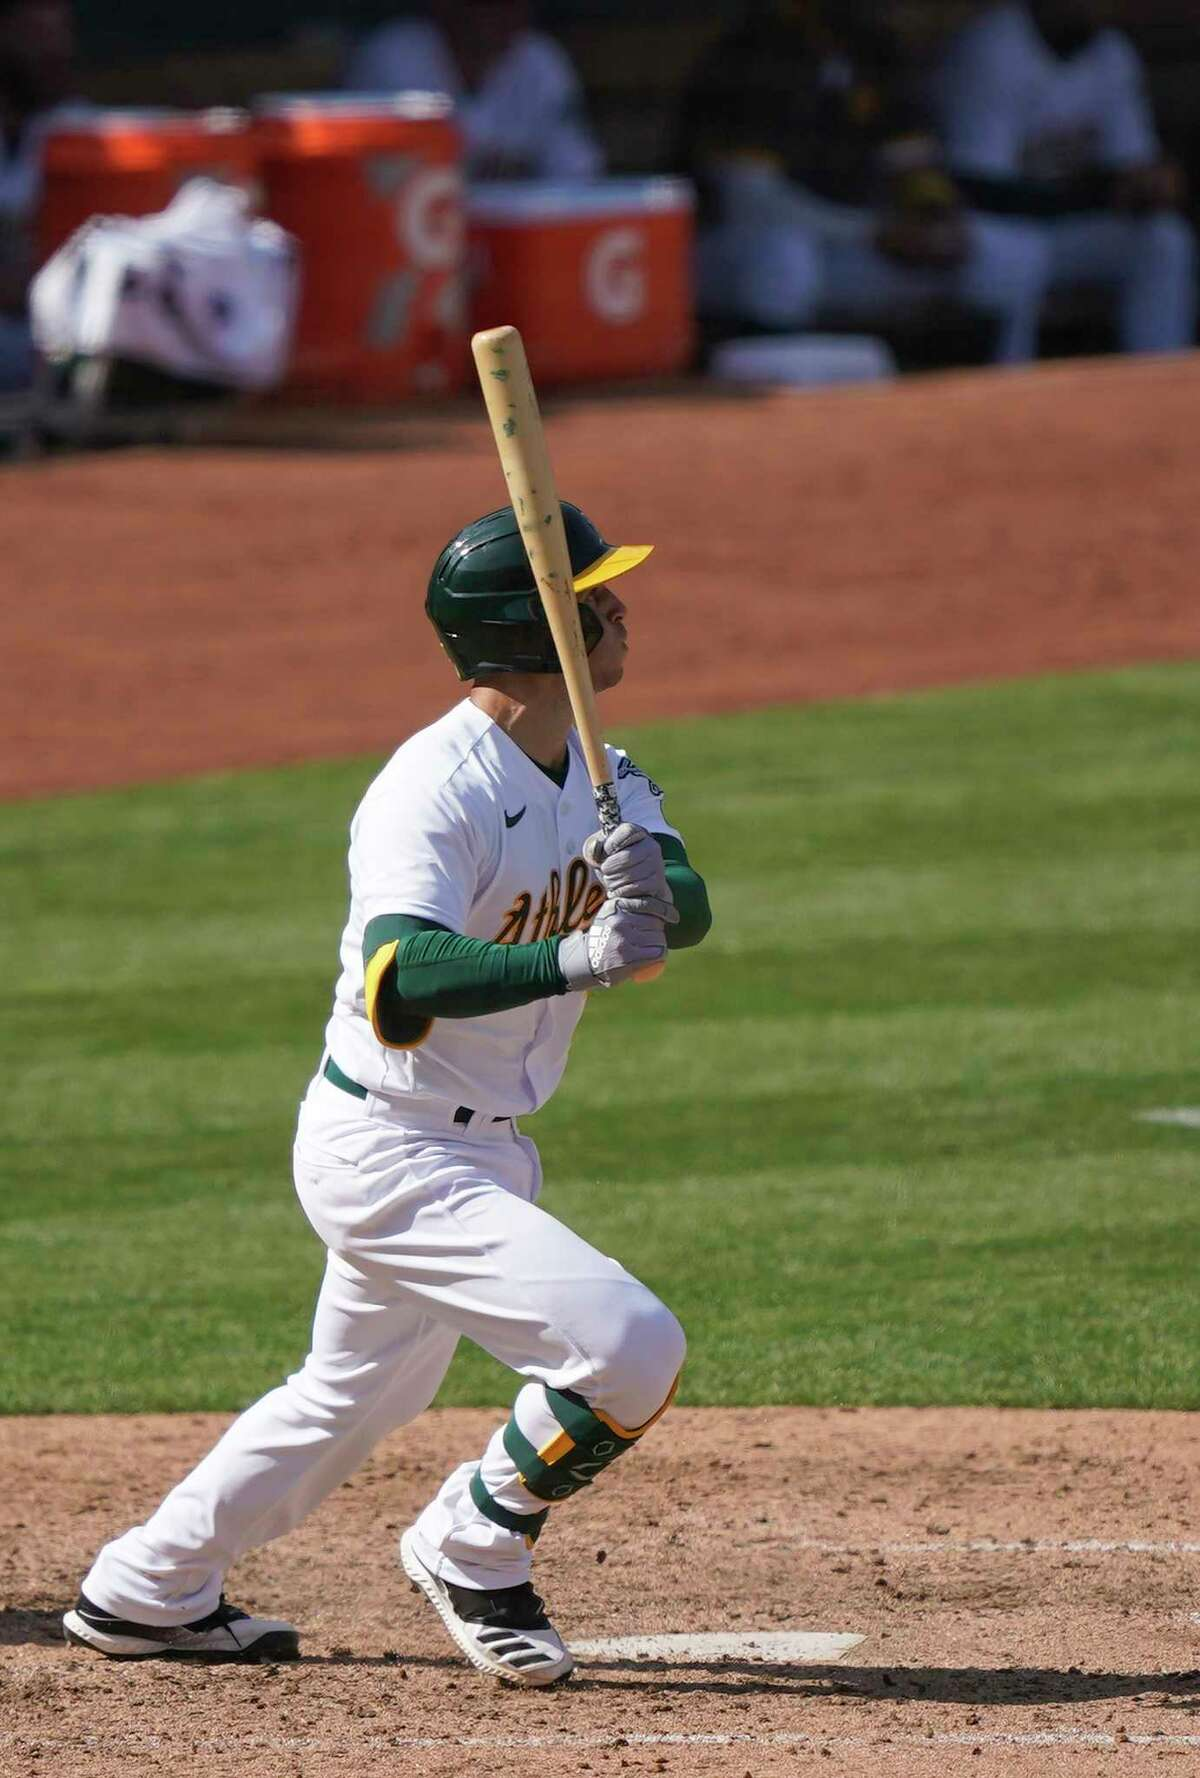 OAKLAND, CALIFORNIA - SEPTEMBER 19: Tommy La Stella #3 of the Oakland Athletics hits a two-run RBI triple against the San Francisco Giants in the bottom of the seventh inning at RingCentral Coliseum on September 19, 2020 in Oakland, California. (Photo by Thearon W. Henderson/Getty Images)